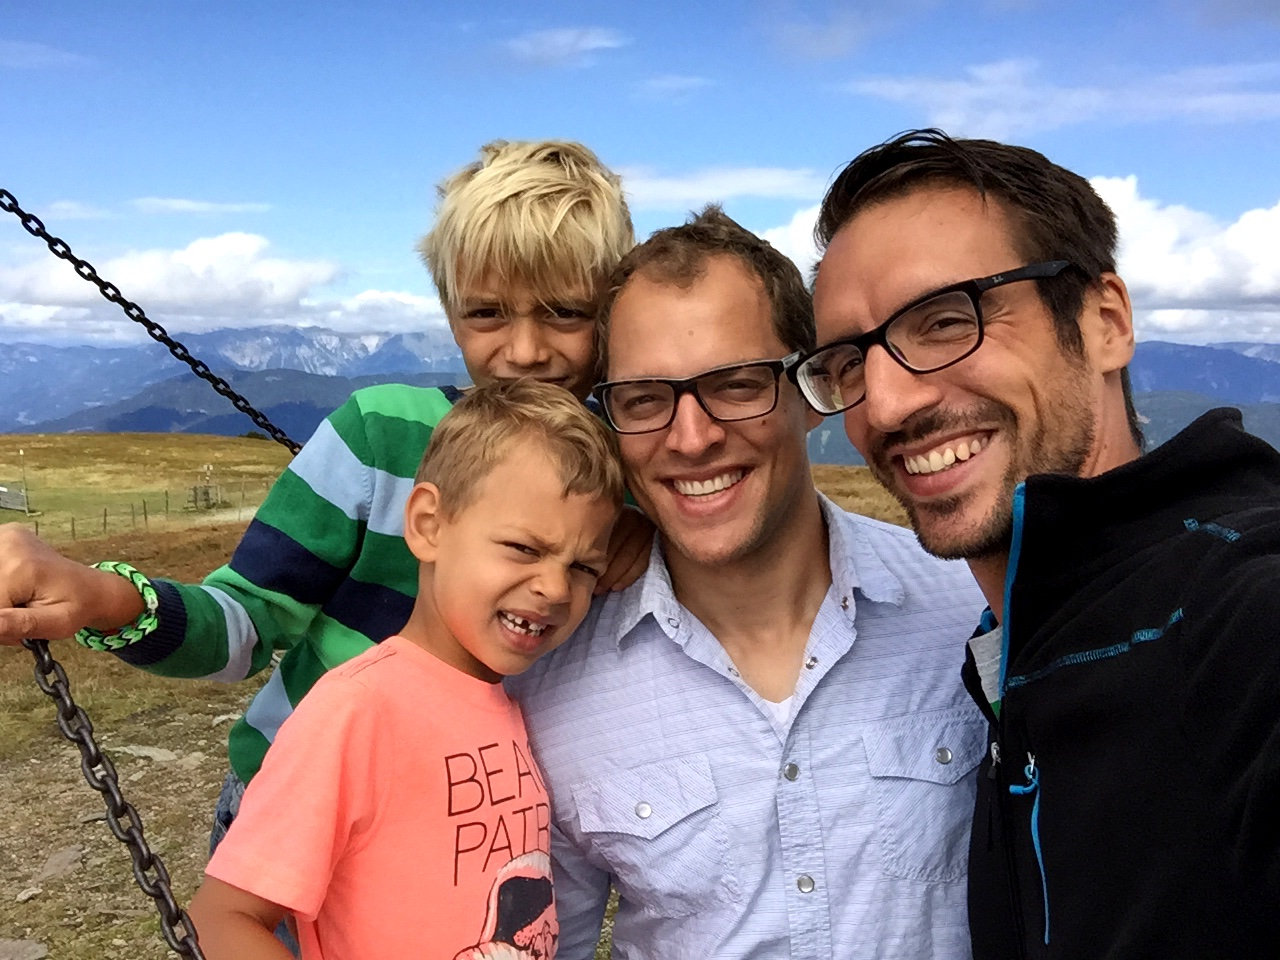 David (mentioned in this post), his son, me, and mine, on a little hike outside the city